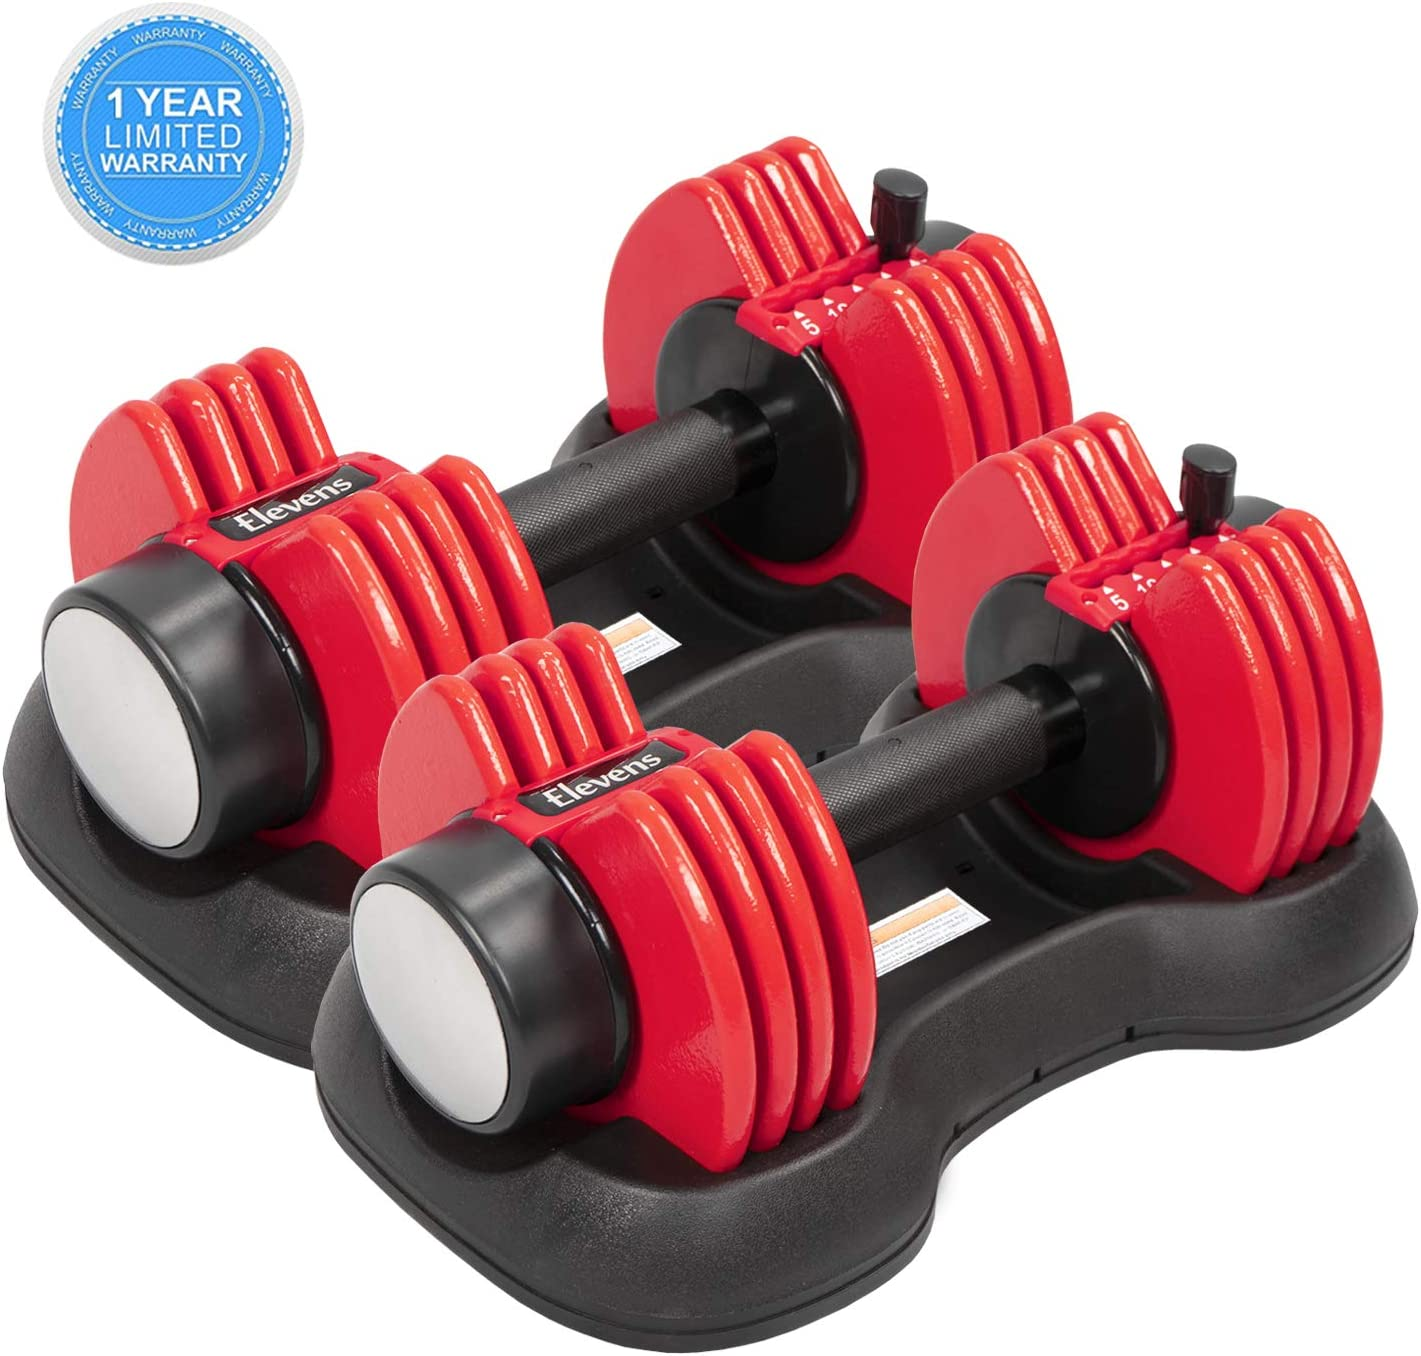 ELEVENS Adjustable Dumbbells – 27.5 lbs Weight Set with Handle and Weight Plate for Gym and Home, Black